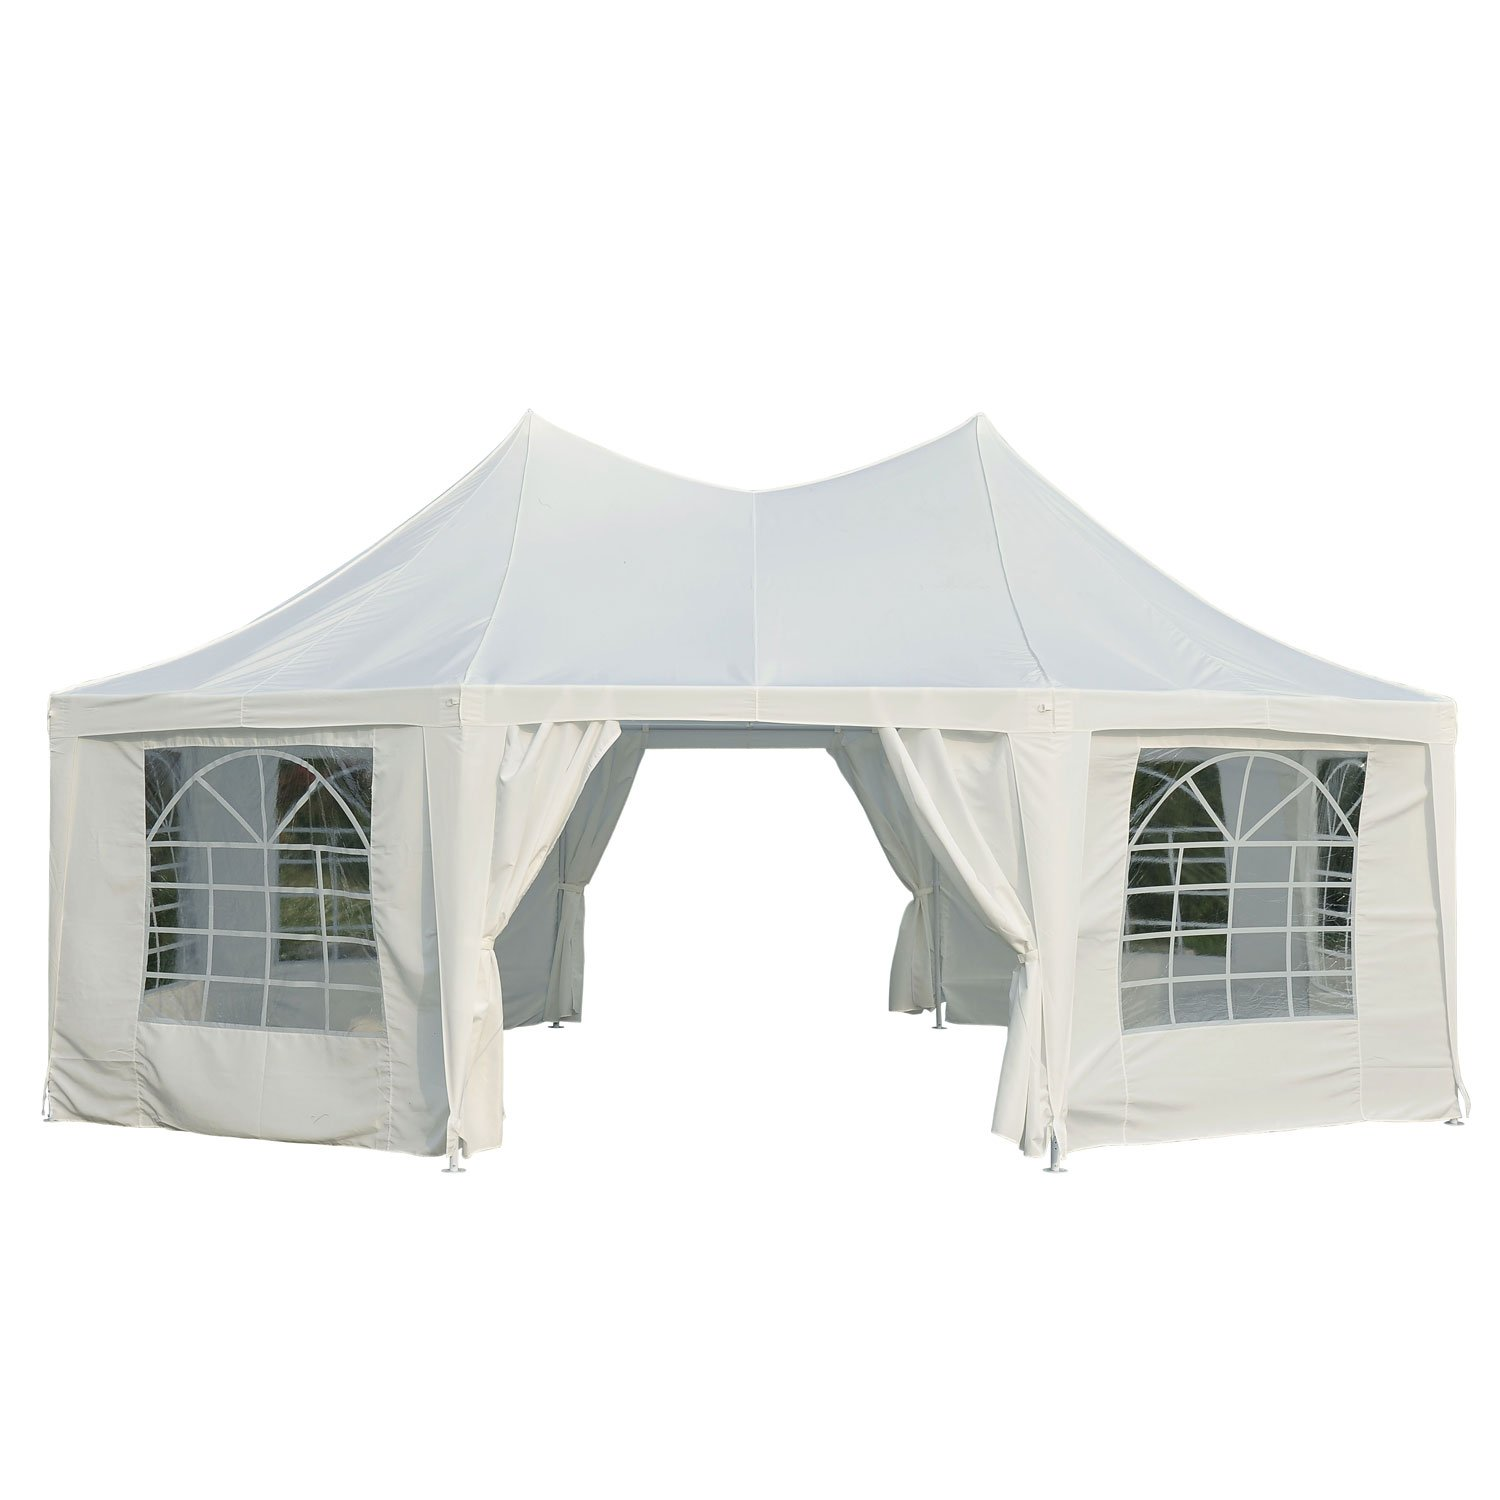 Outsunny 6.8x5M Large Octagonal Party Tent Gazebo Heavy Duty Wedding Marquee Tent Garden Pagoda Tent  sc 1 st  Amazon UK & Quictent 6.8x5 Meter Beige Octangle Festival Gazebo Party Tent ...